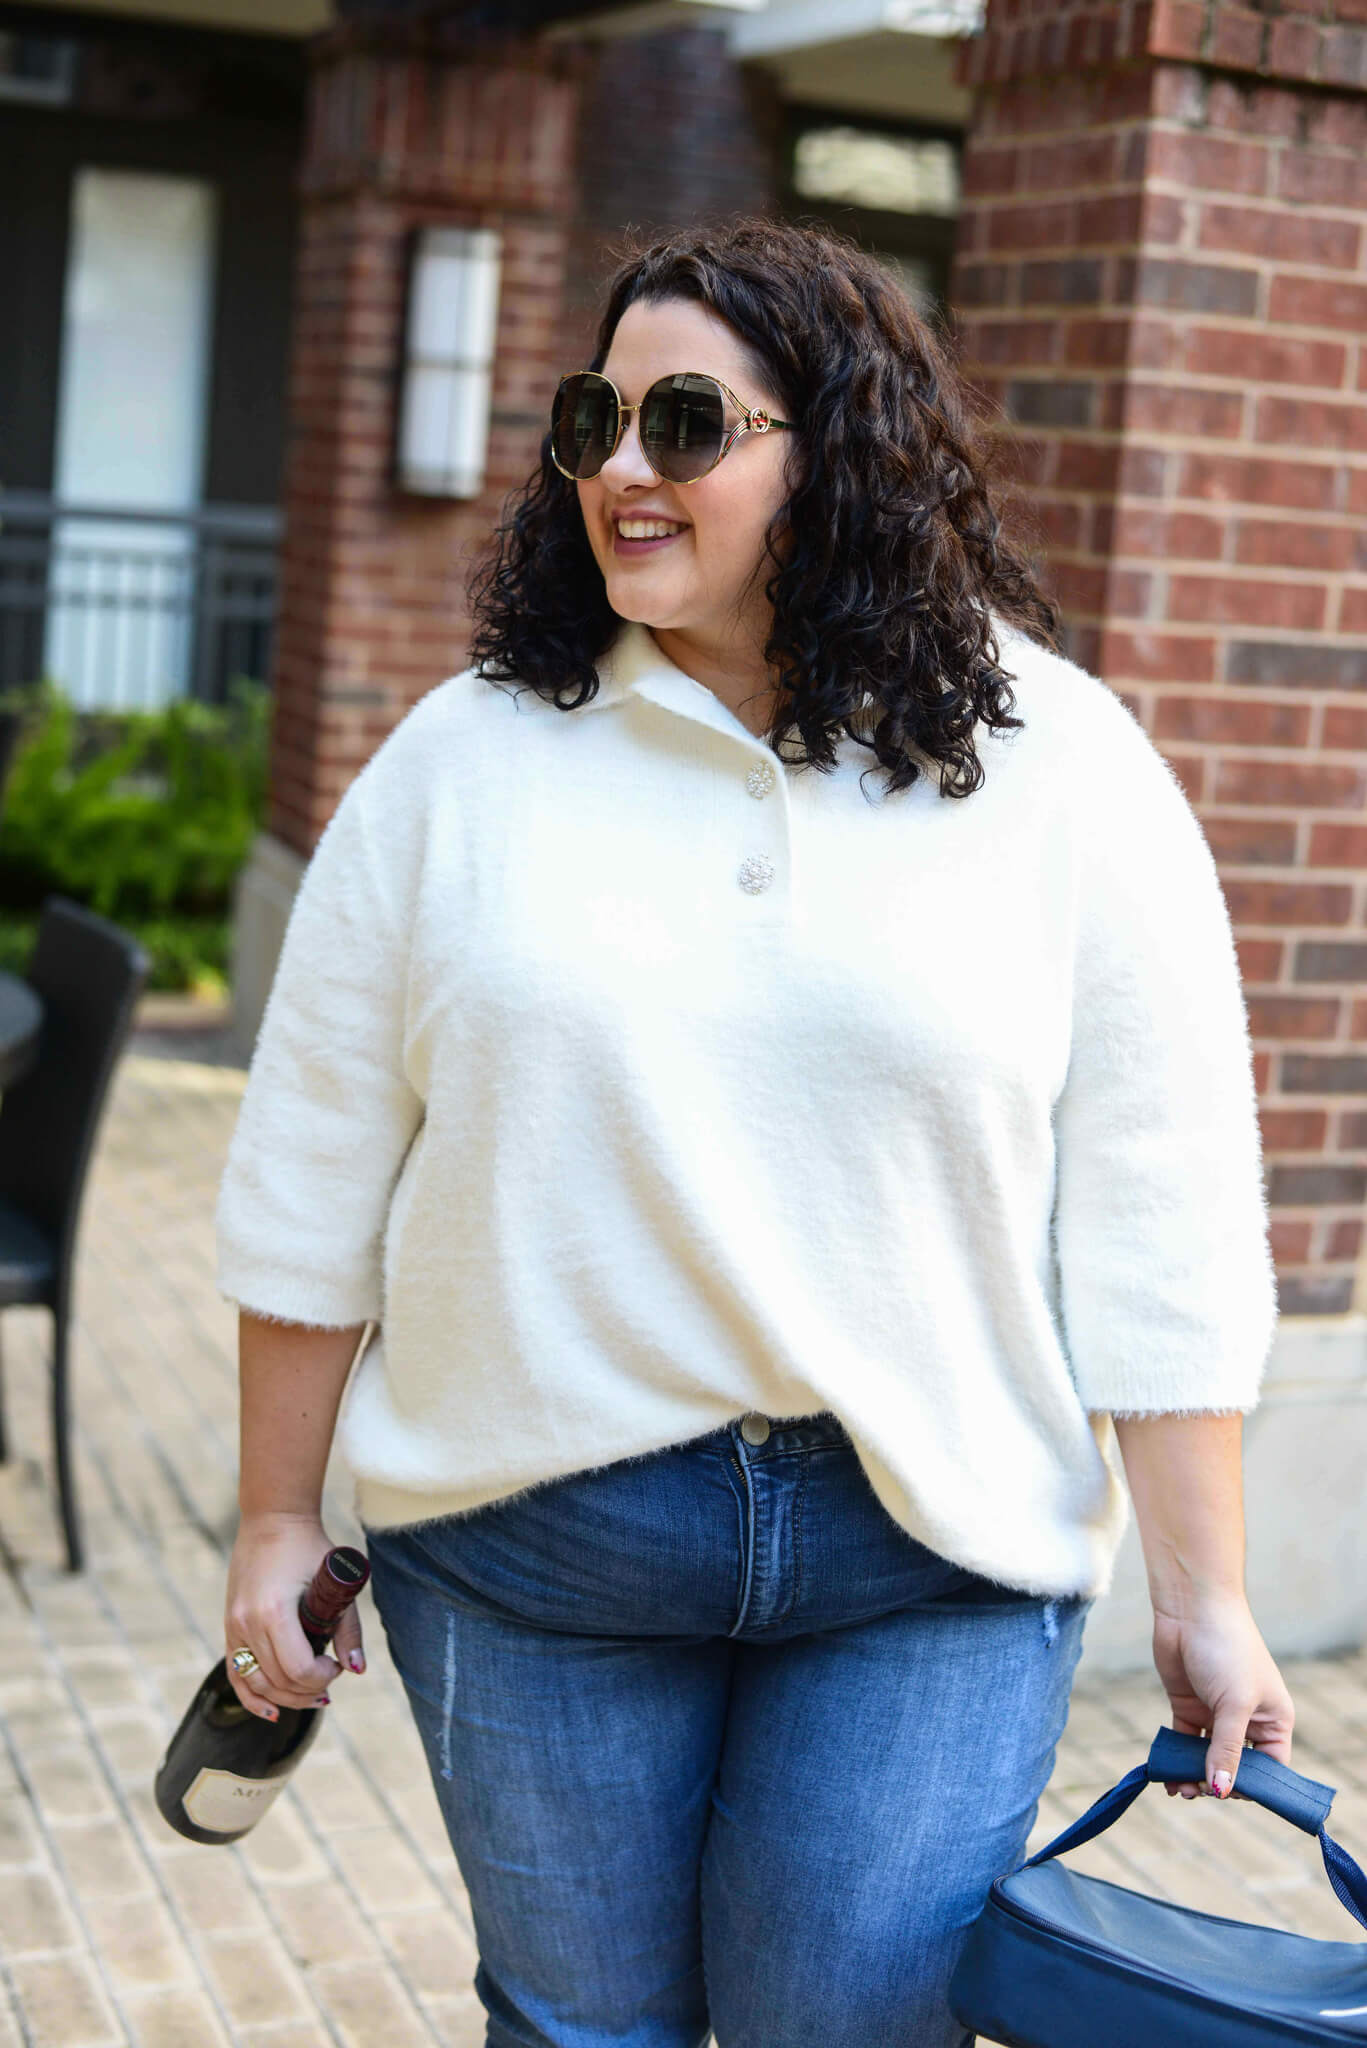 Choosing an outfit to wear to Thanksgiving dinner can be difficult, but this short sleeve cream sweater from H&M immediately captured my attention and is perfect for Turkey Day celebrations